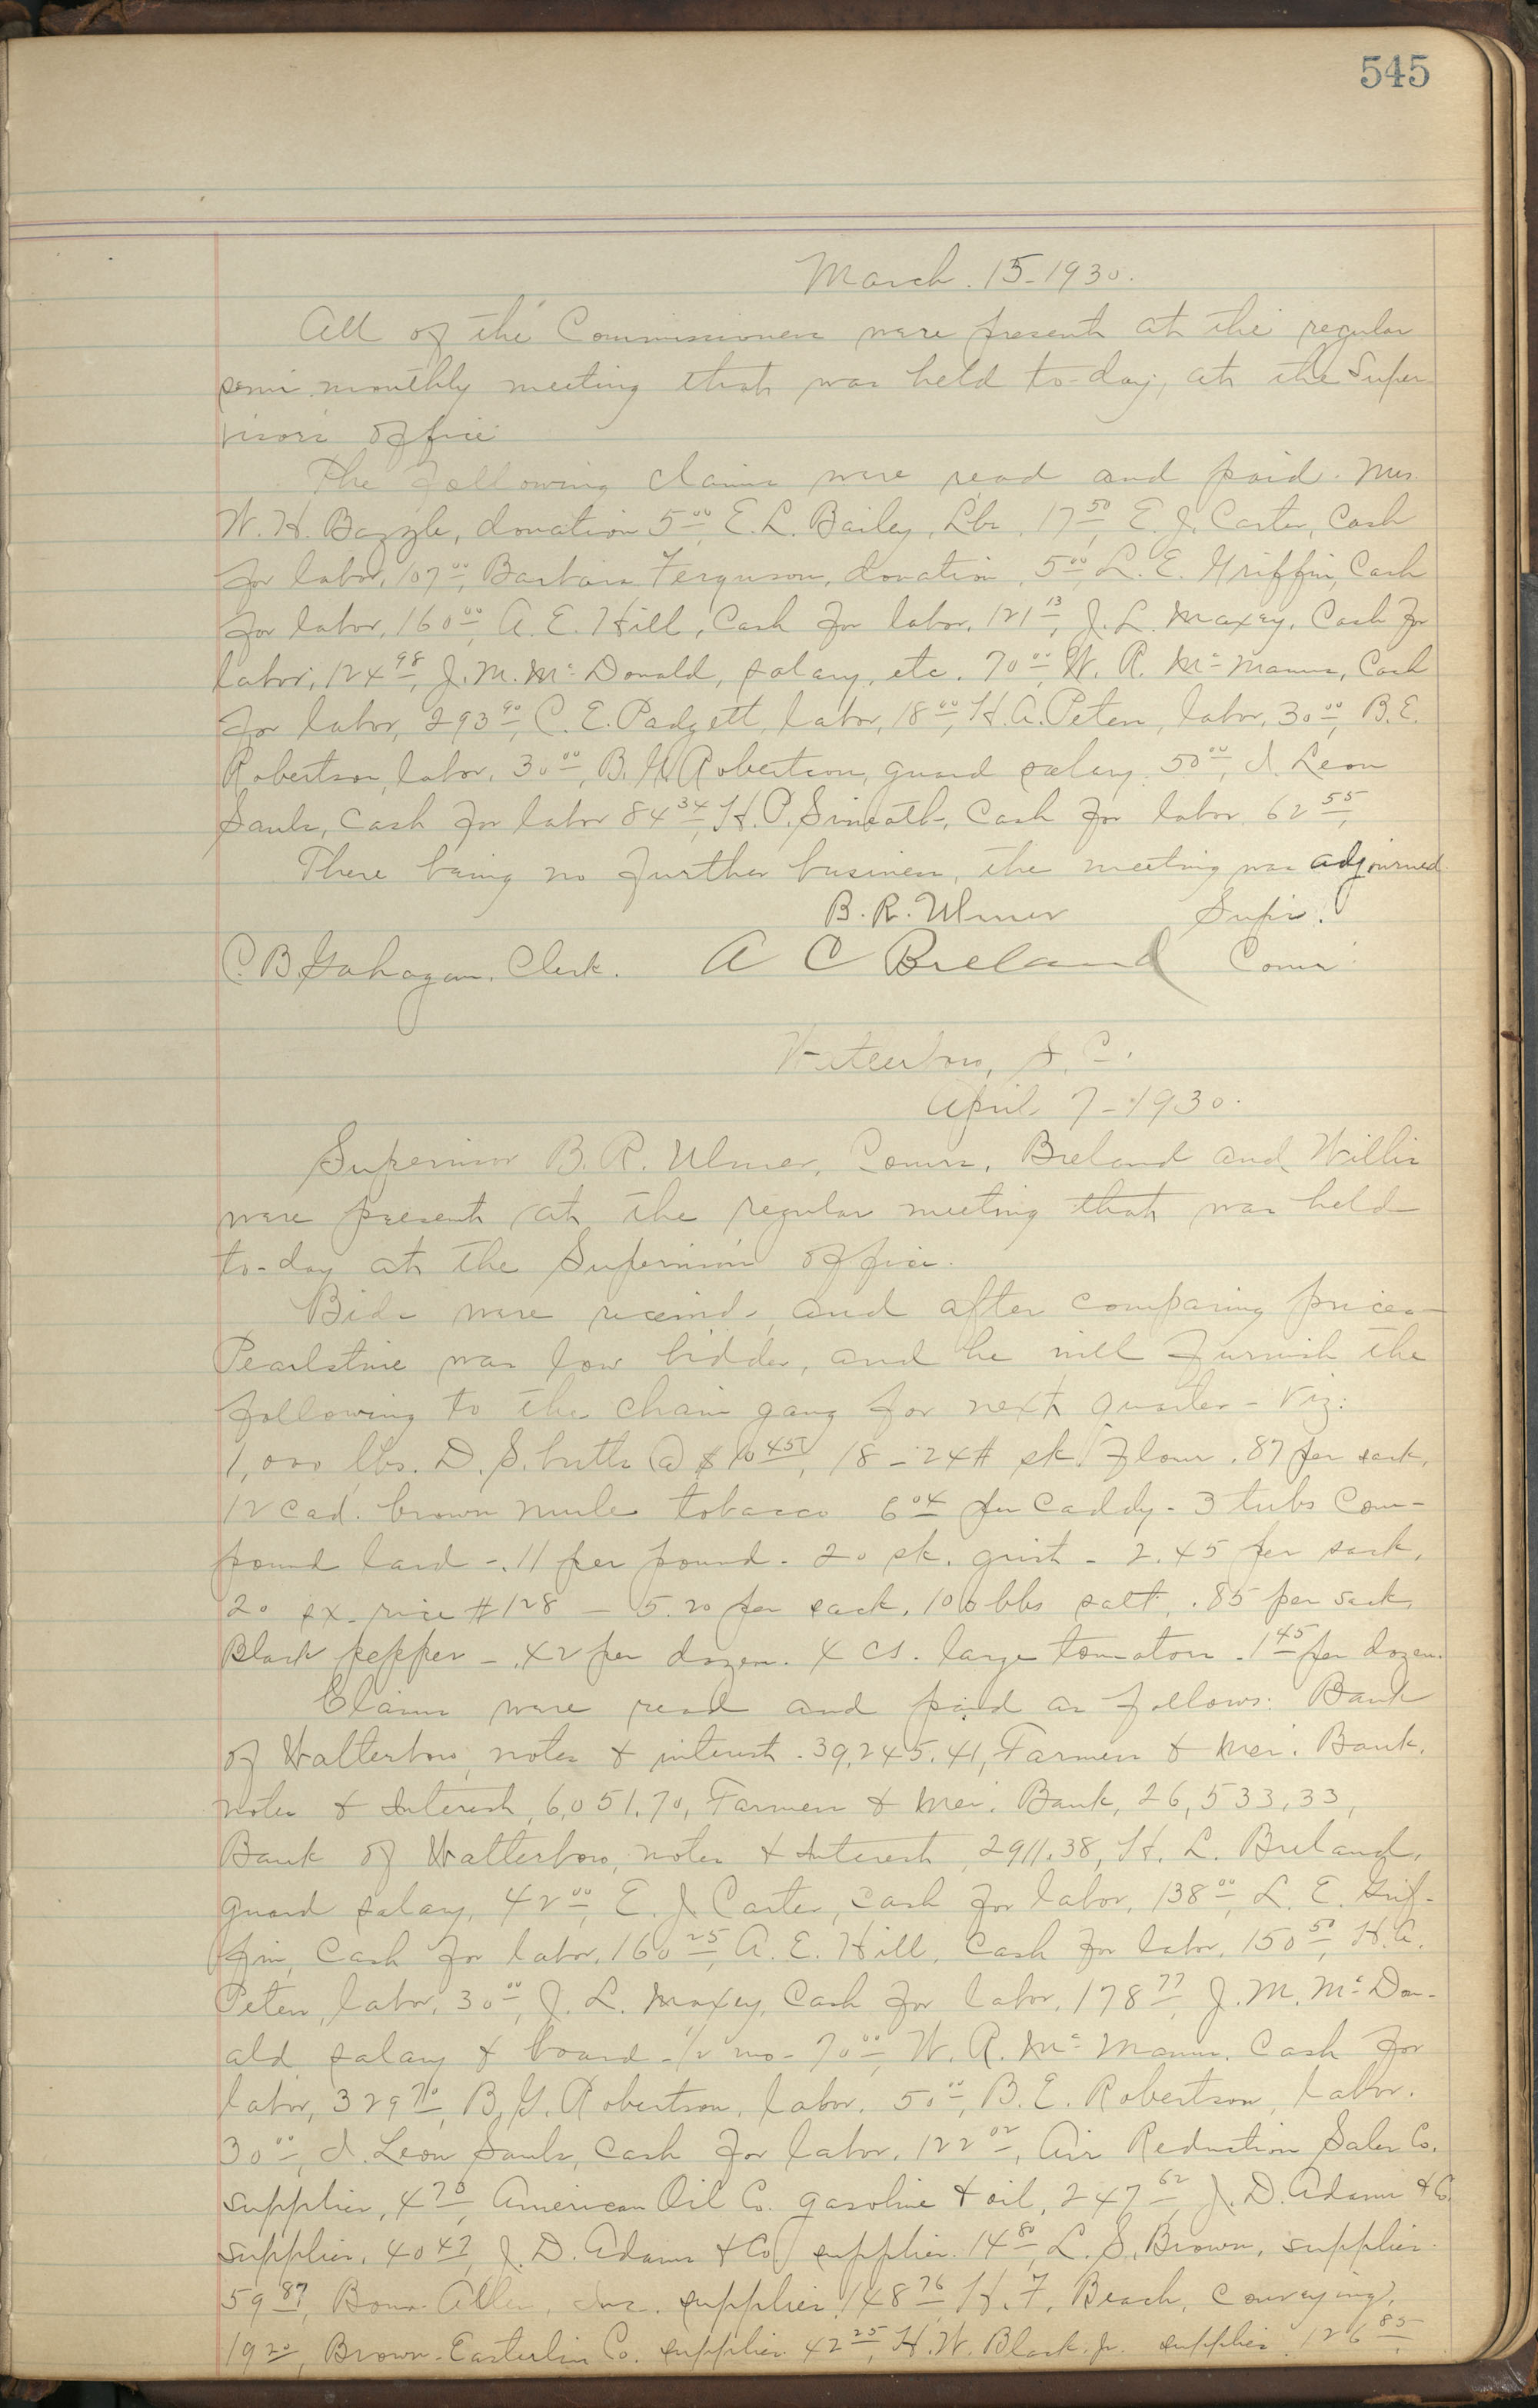 Colleton County Highway Commission Ledger, Page 545